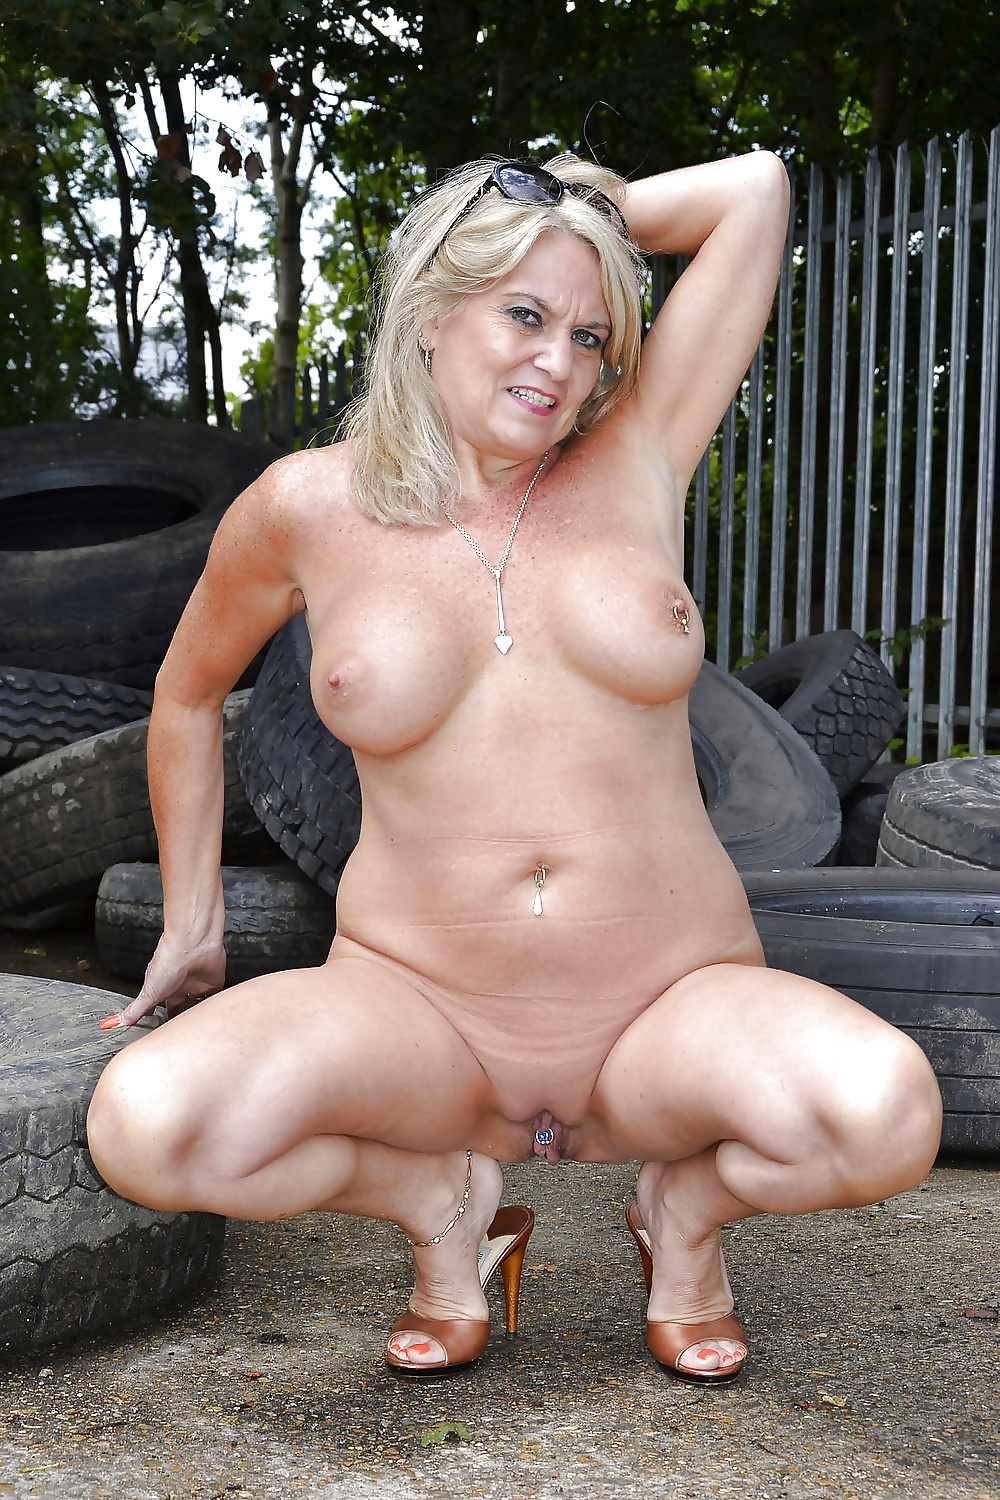 Gorgeous granny with old but still hot body 2